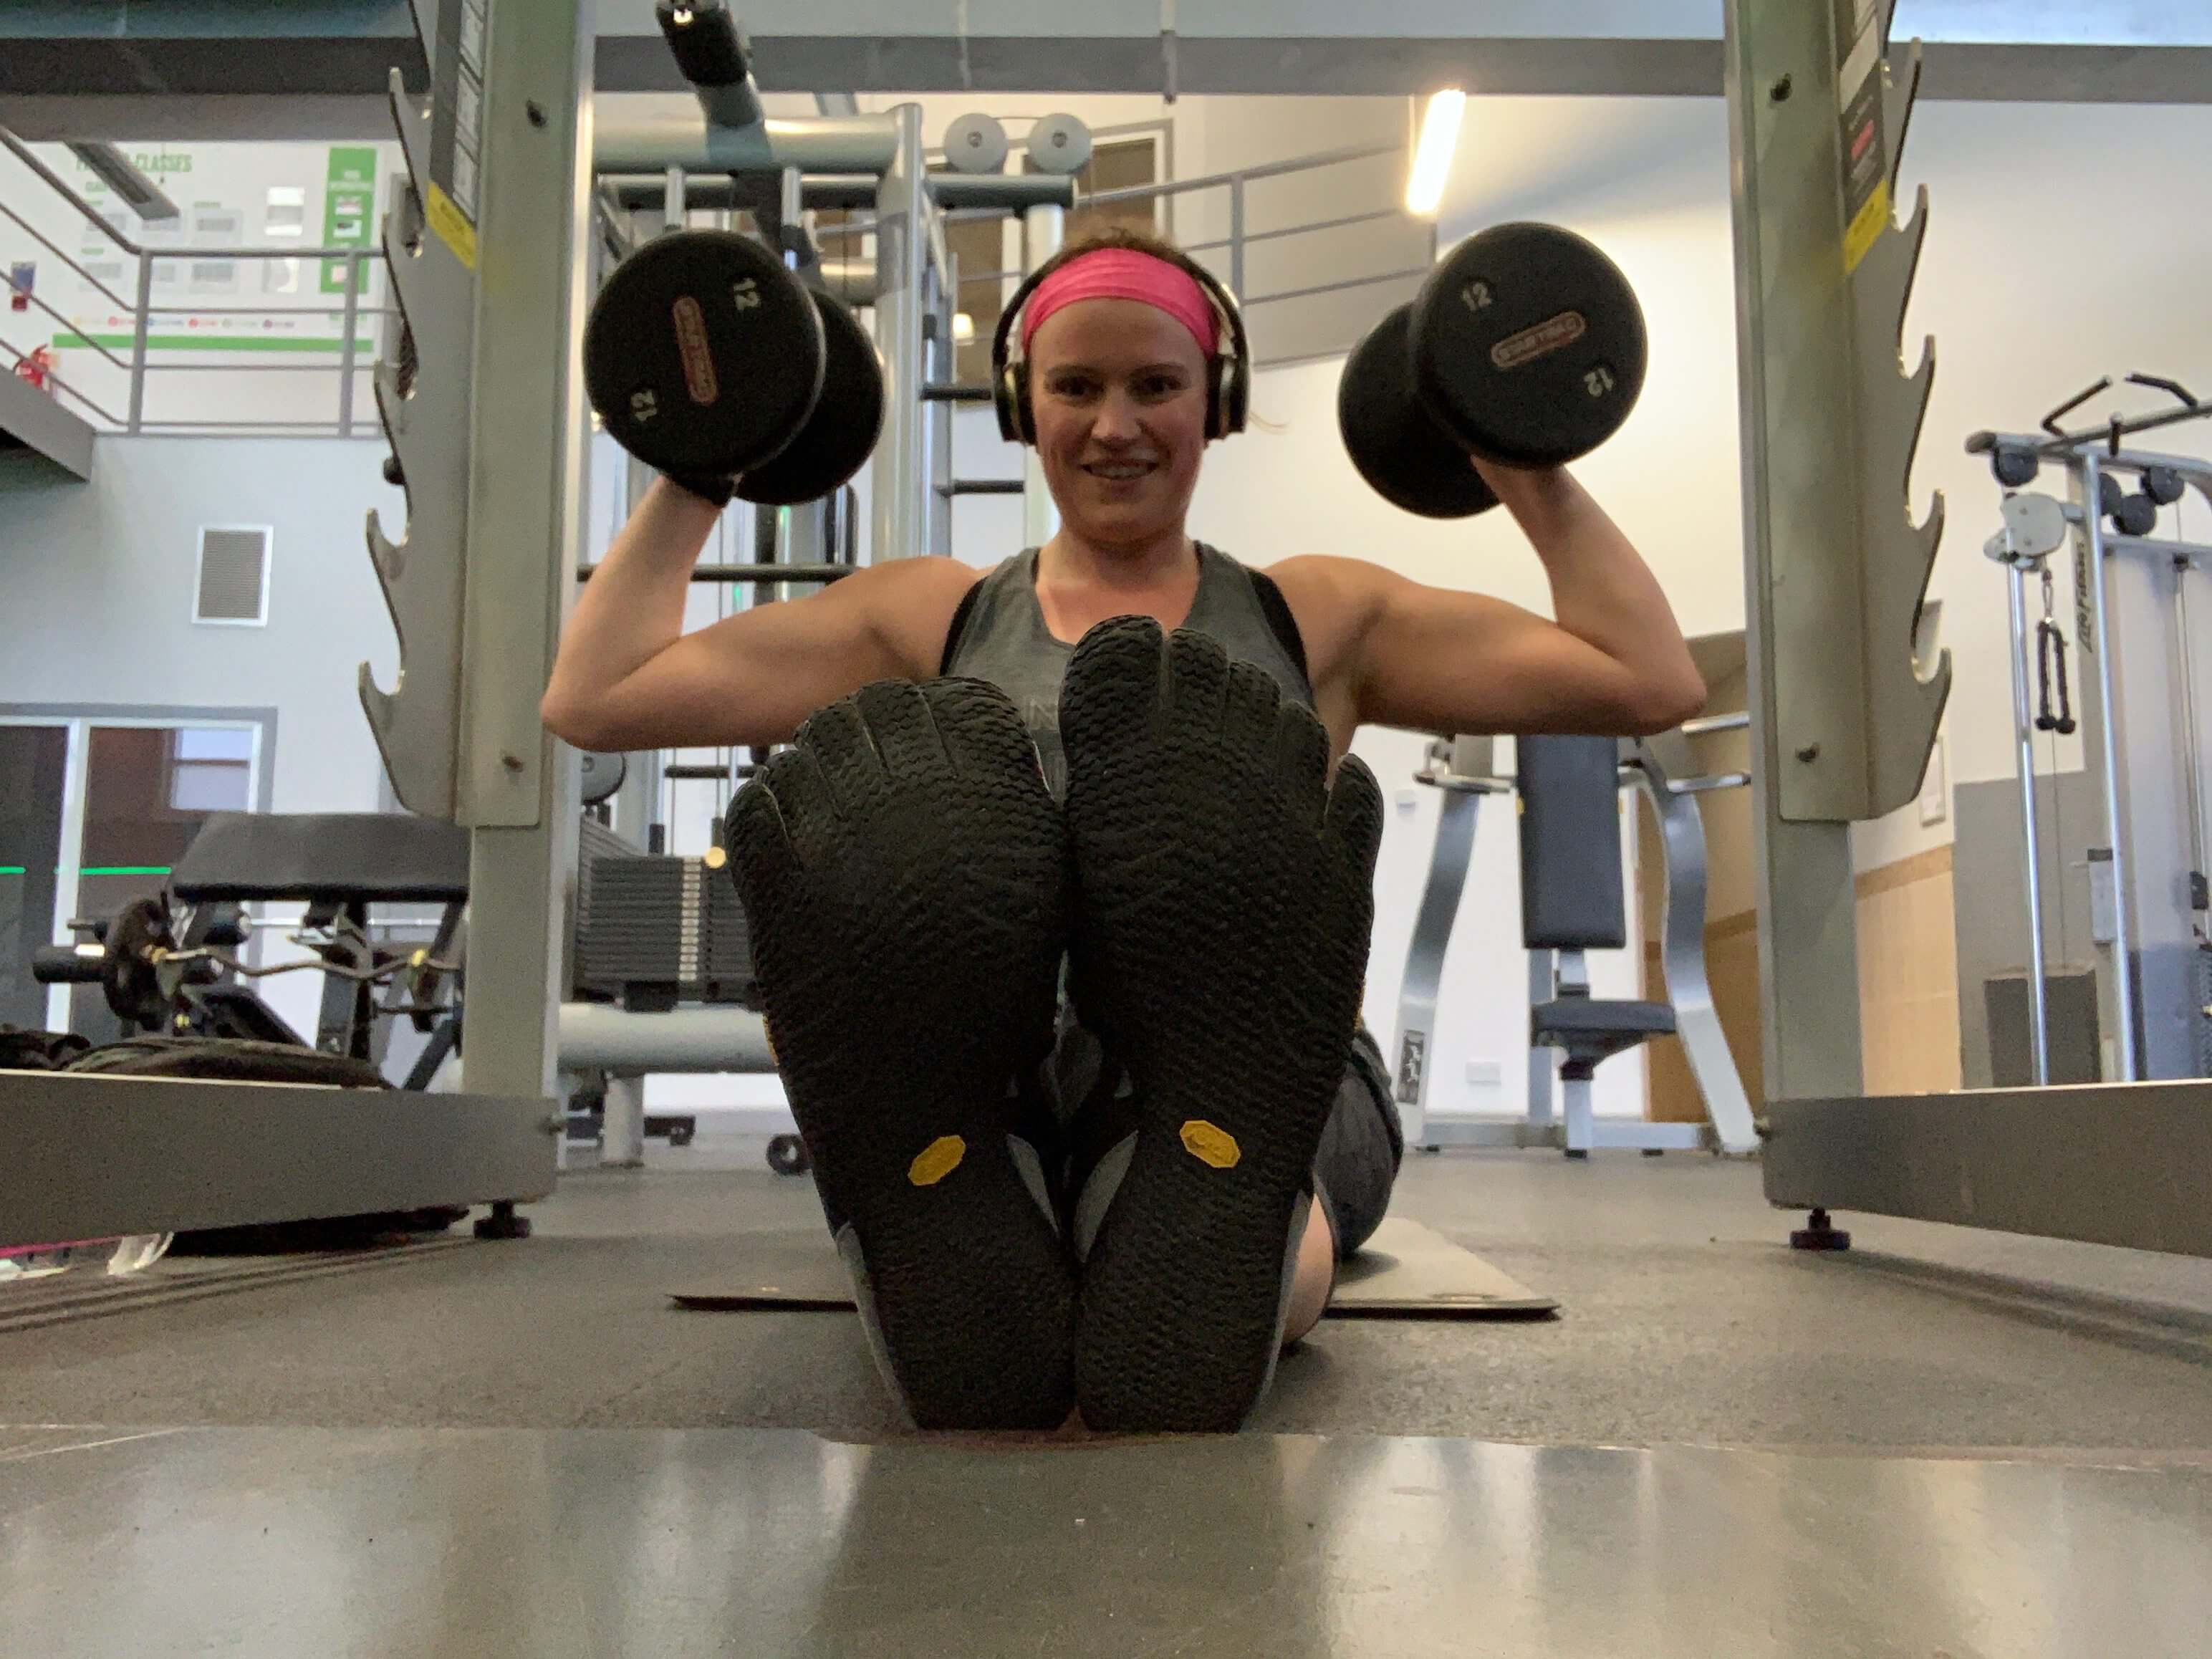 Jo at the gym